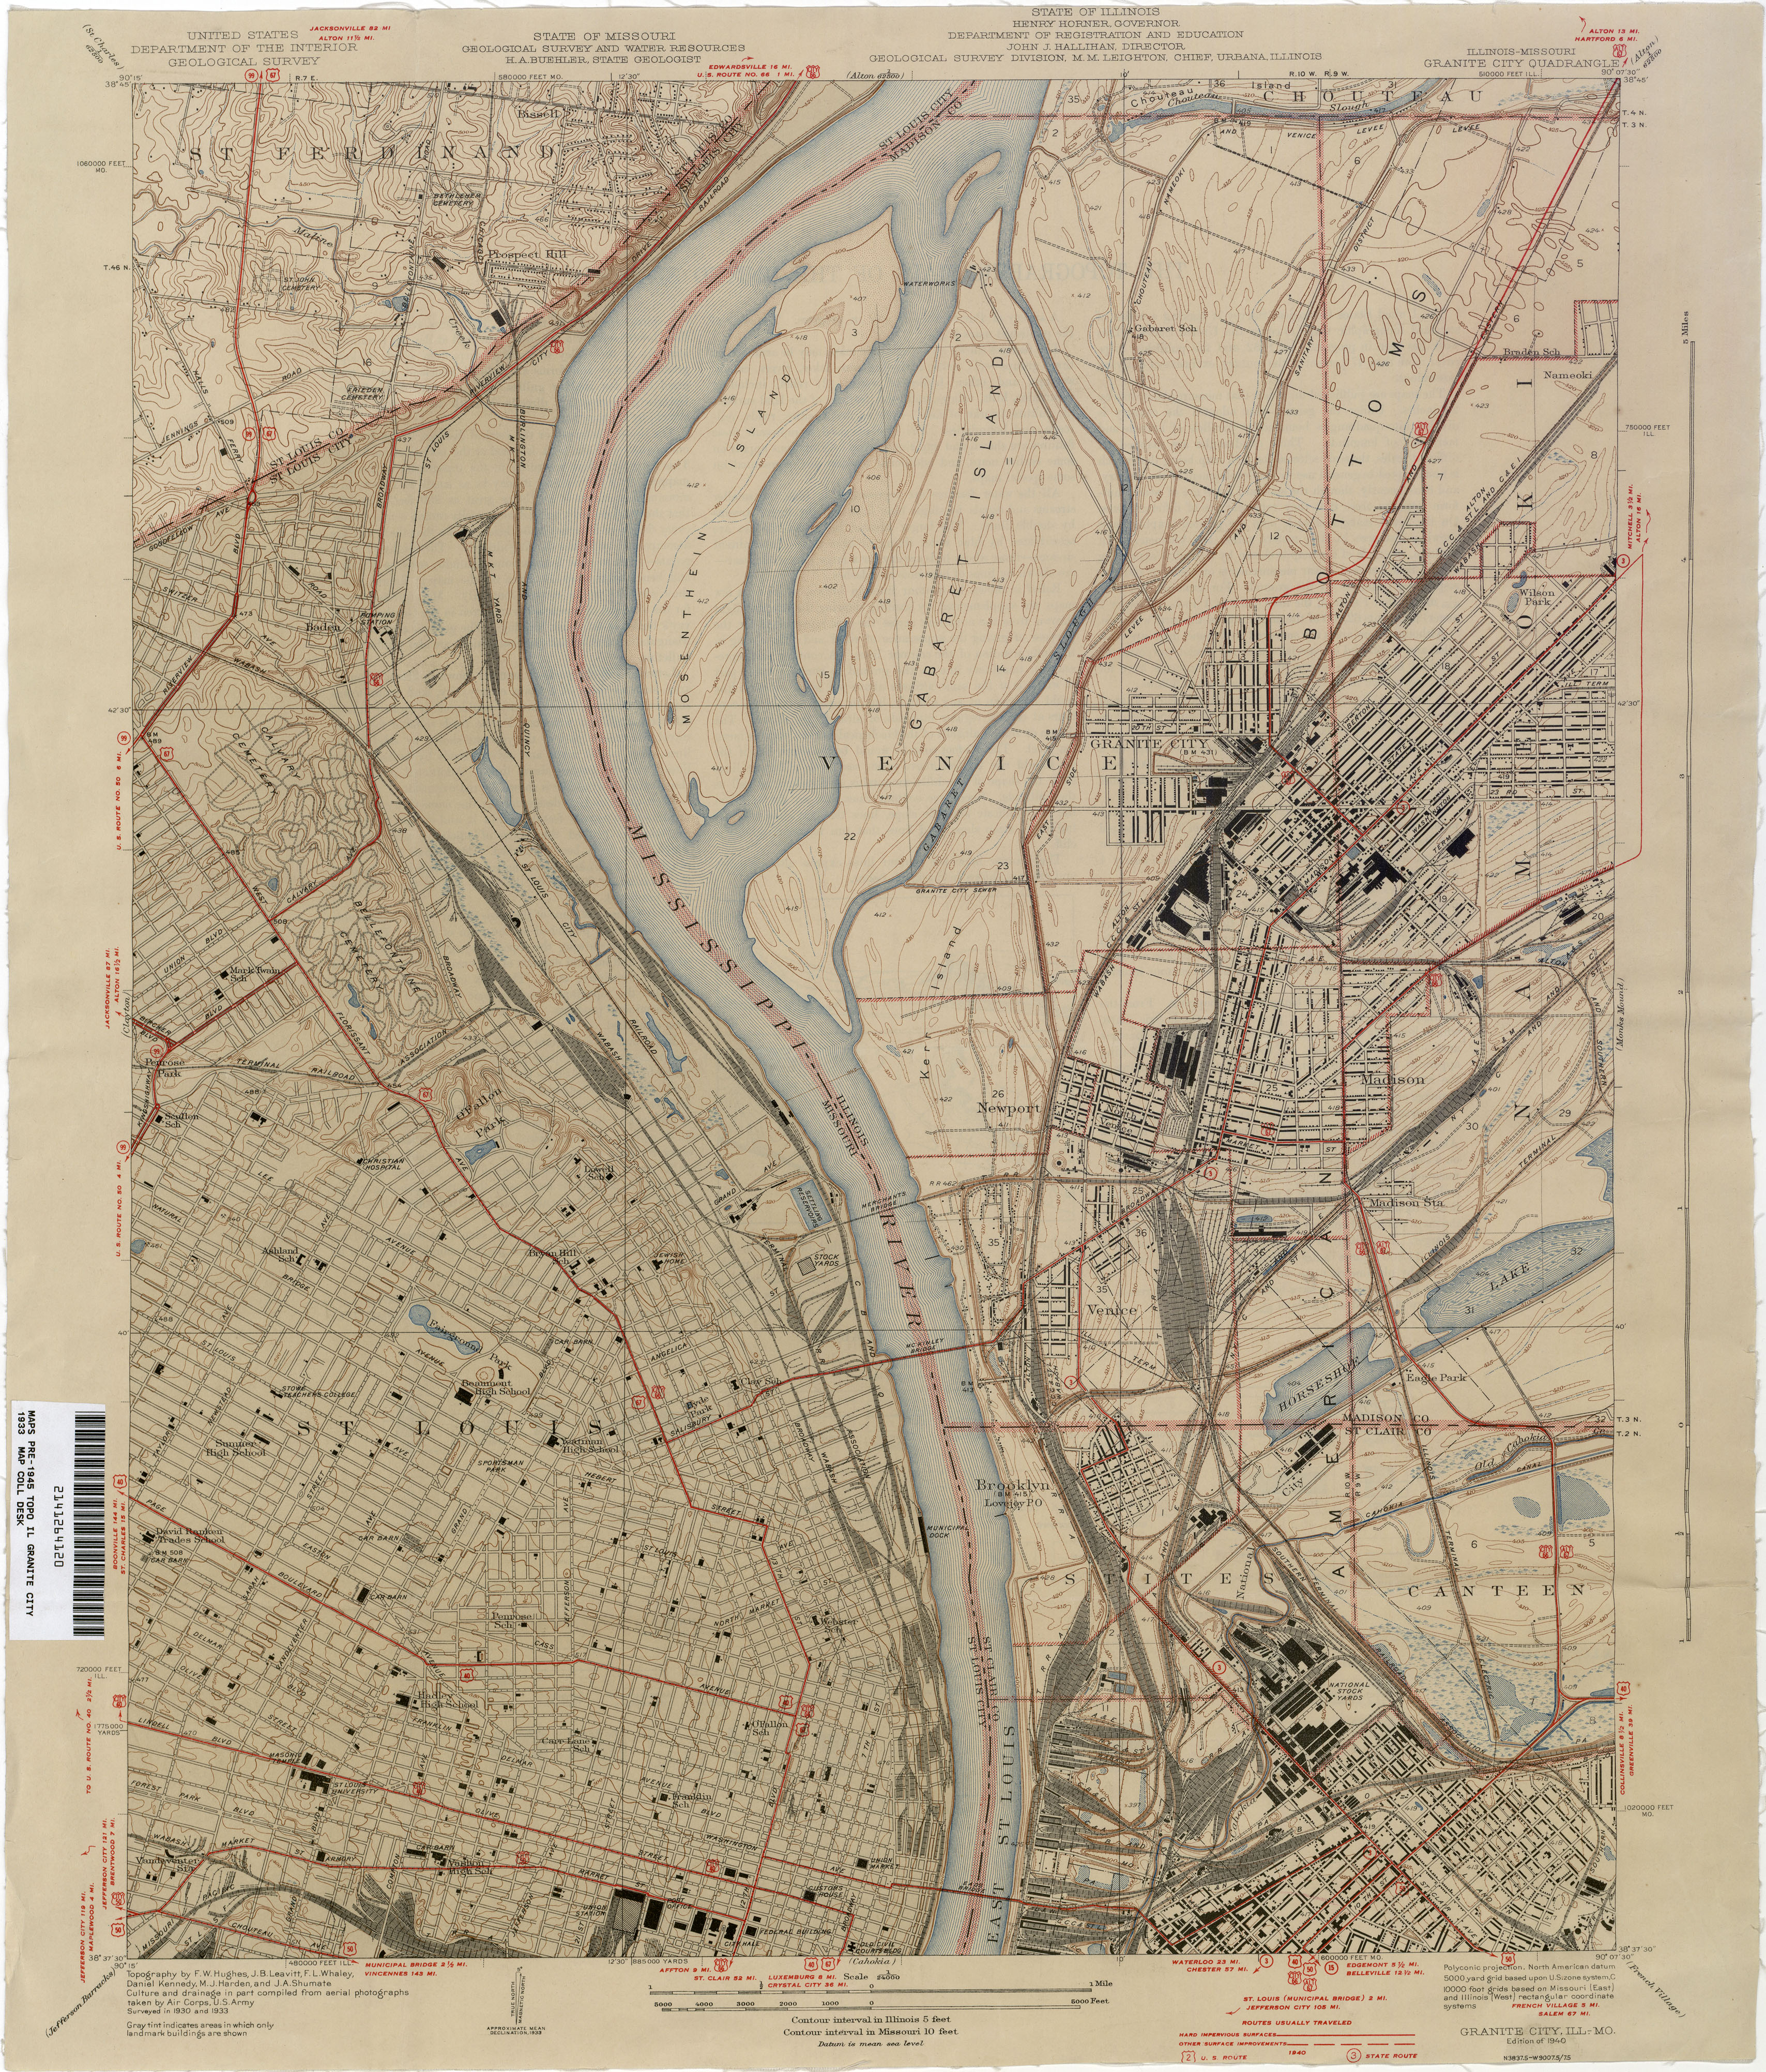 Missouri Historical Topographic Maps - Perry-Castañeda Map ... on colorado map 1950, chicago map 1950, nyc map 1950, san diego map 1950, los angeles map 1950, ohio map 1950,